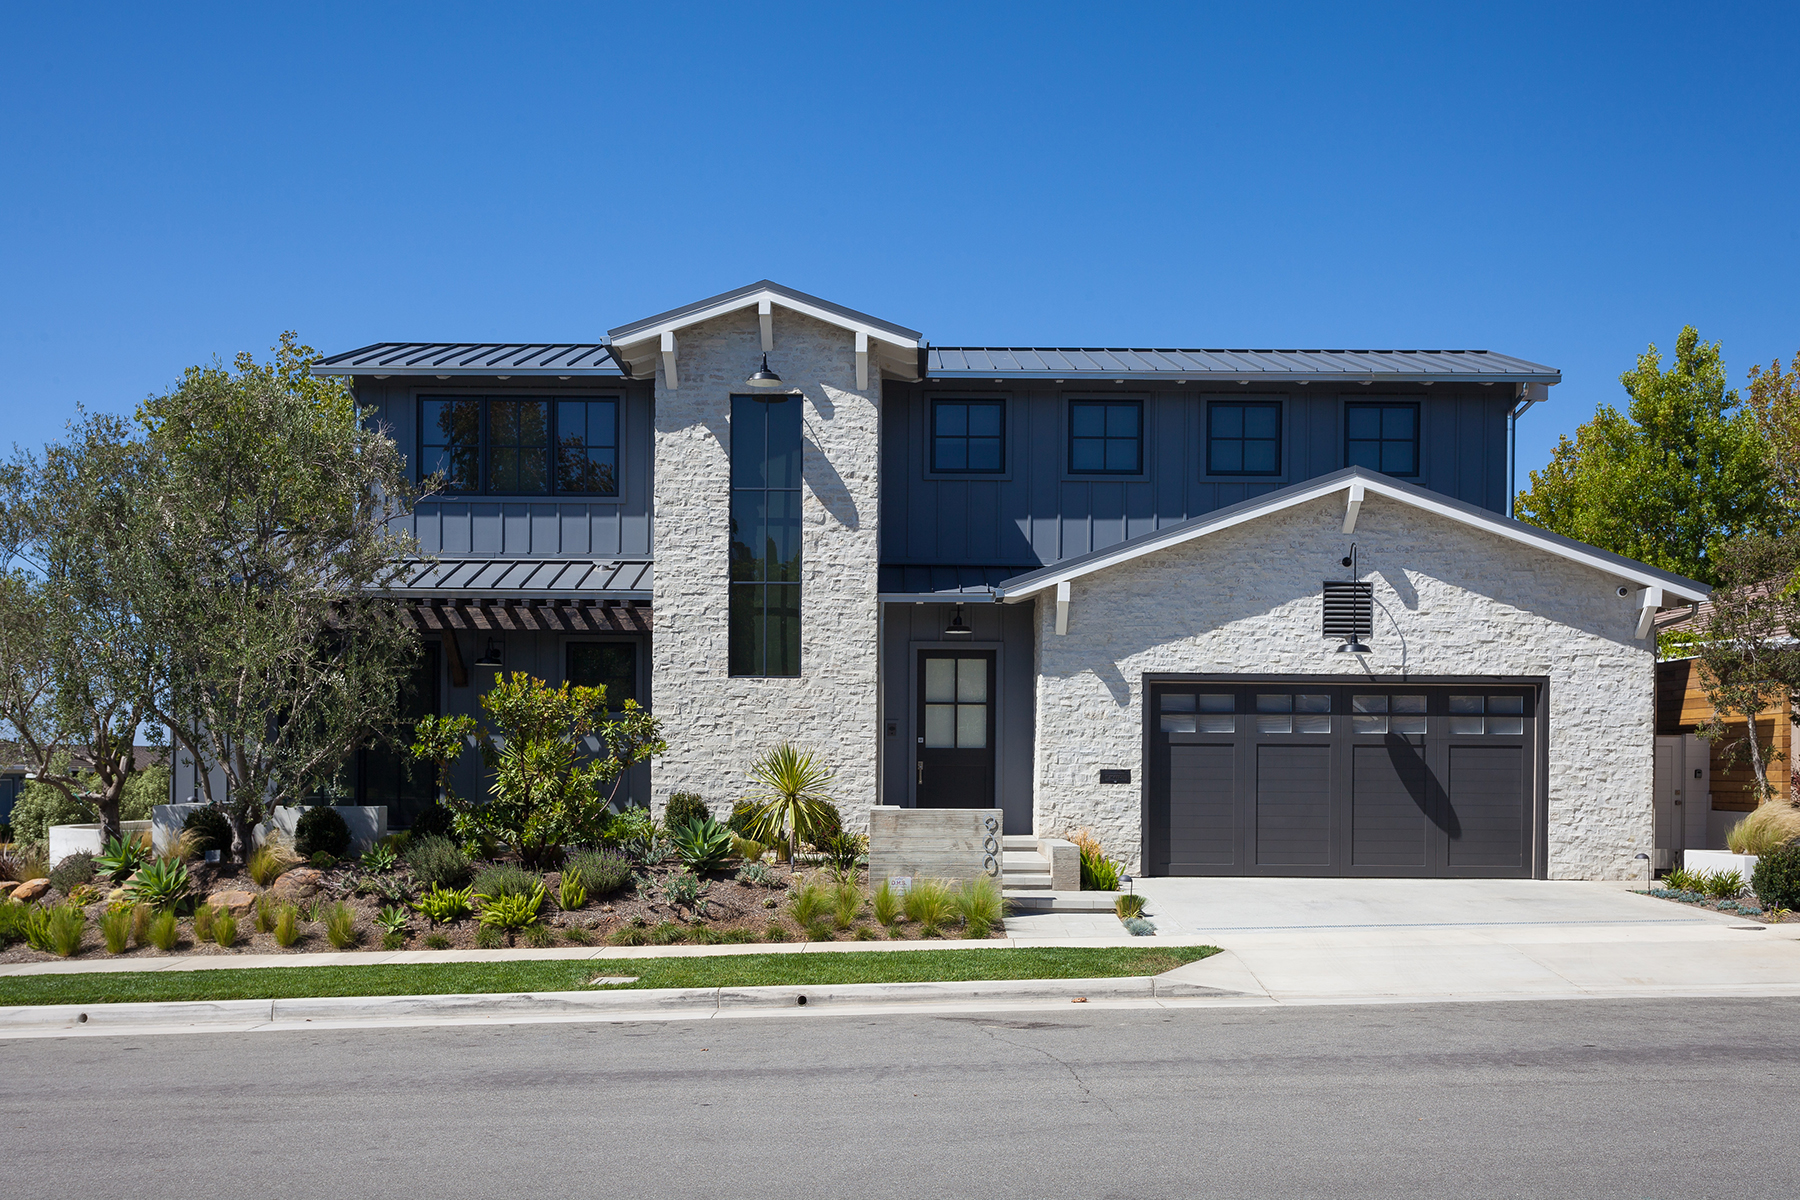 Single Family Home for Sale at 900 Cercis Place Newport Beach, California 92660 United States